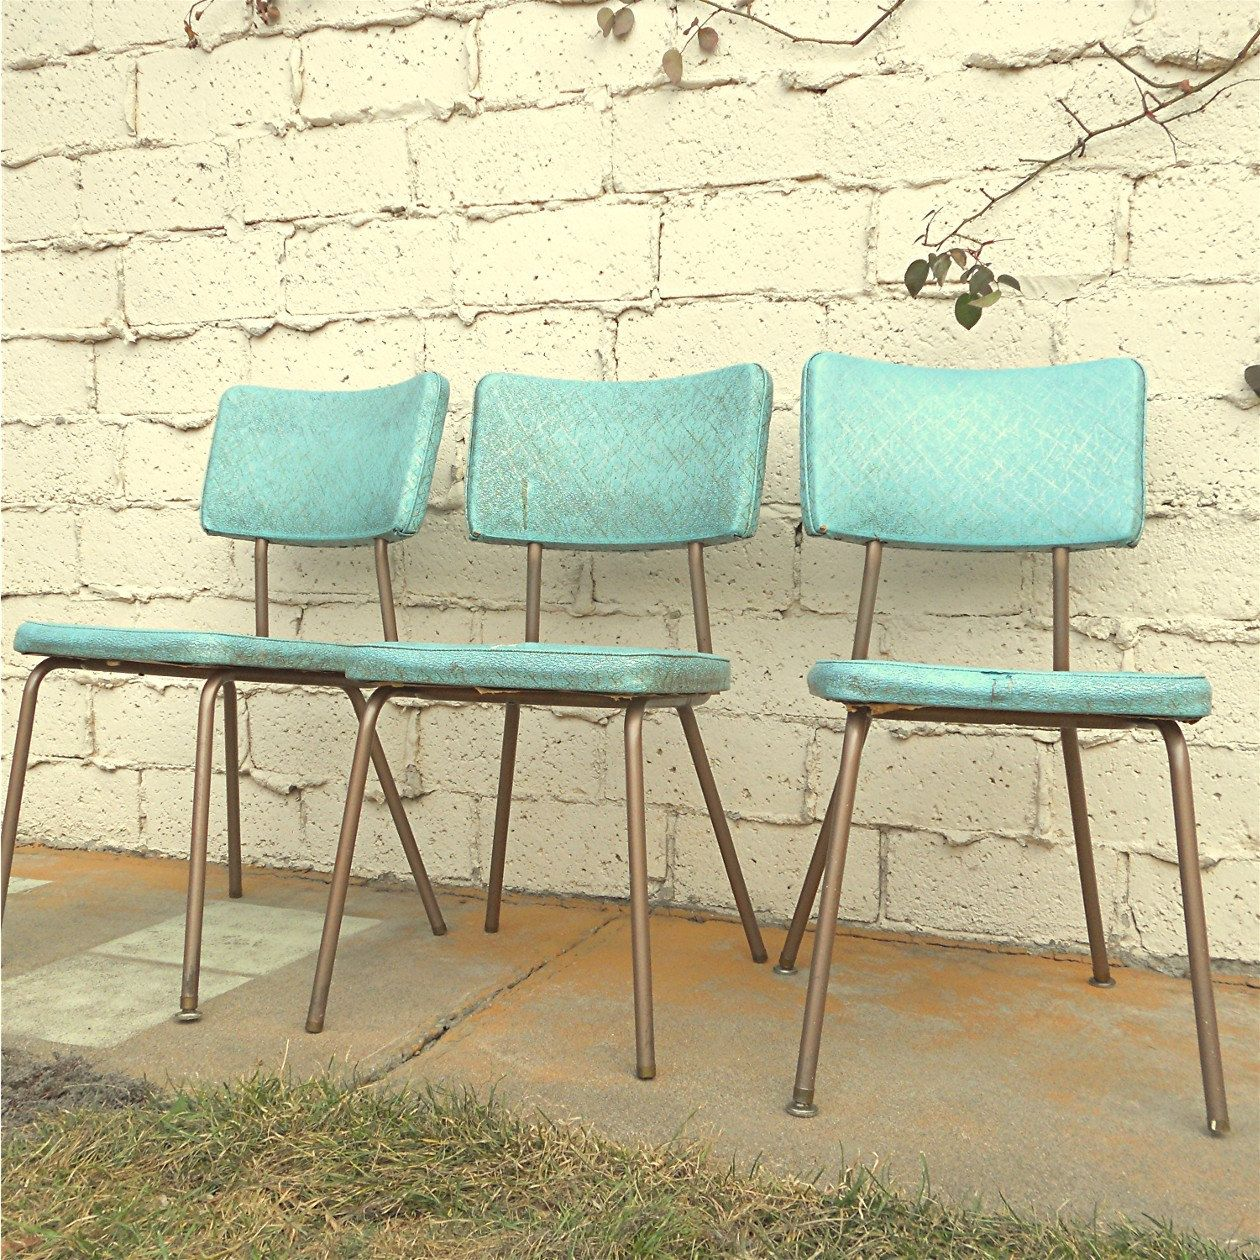 vintage kitchen chairs wall designs for three vinyl turquoise local pick up 30 00 via etsy